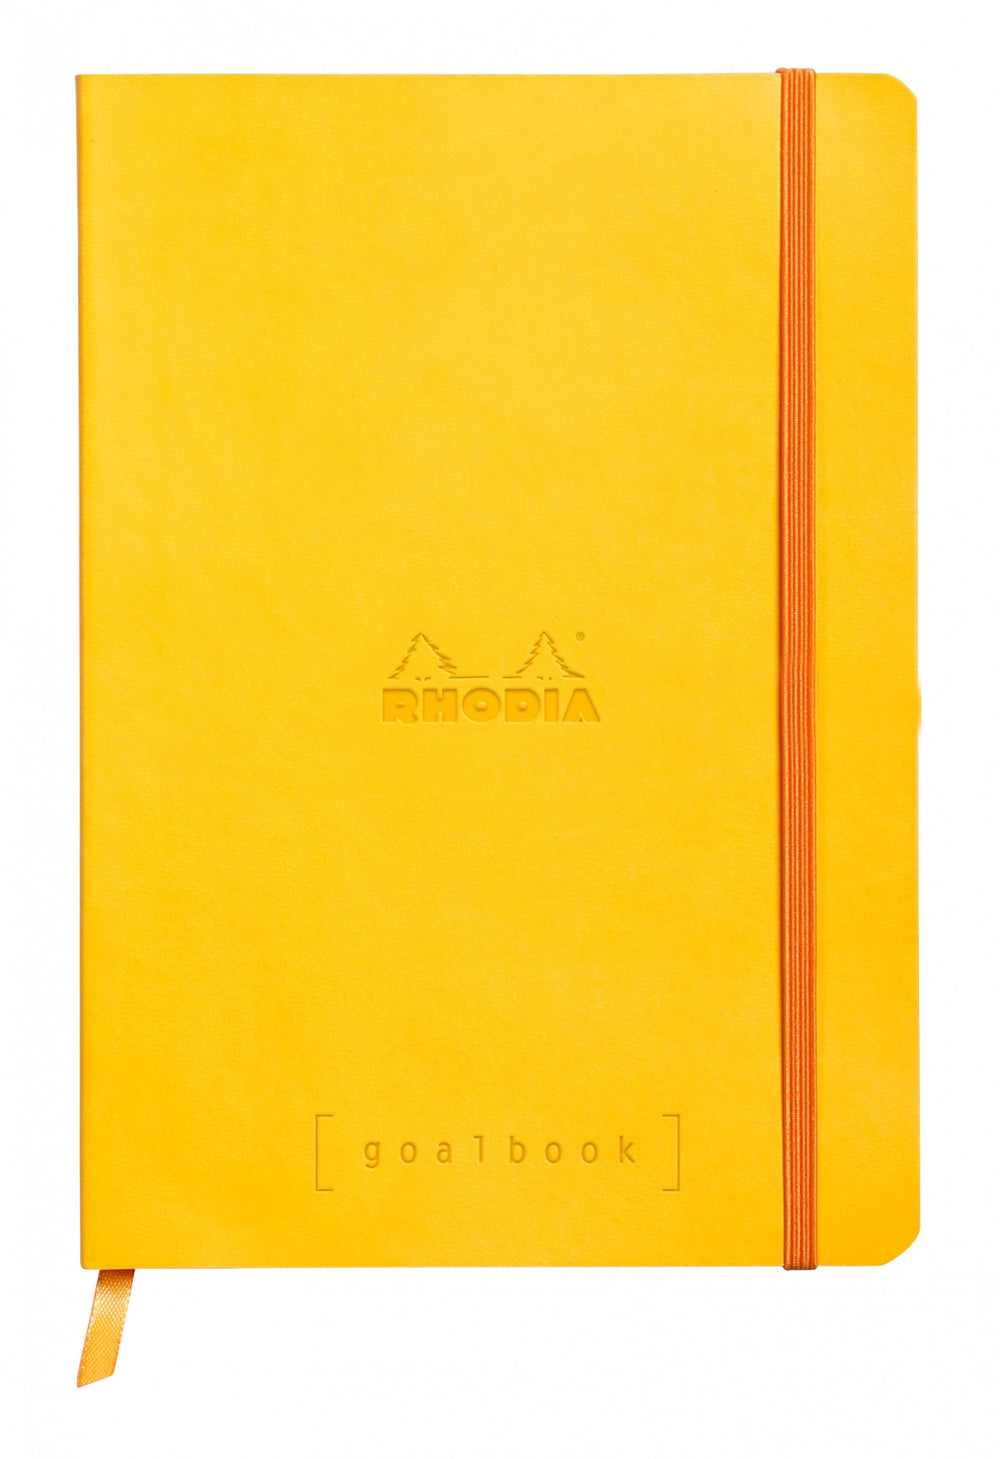 Rhodia Goalbook Yellow